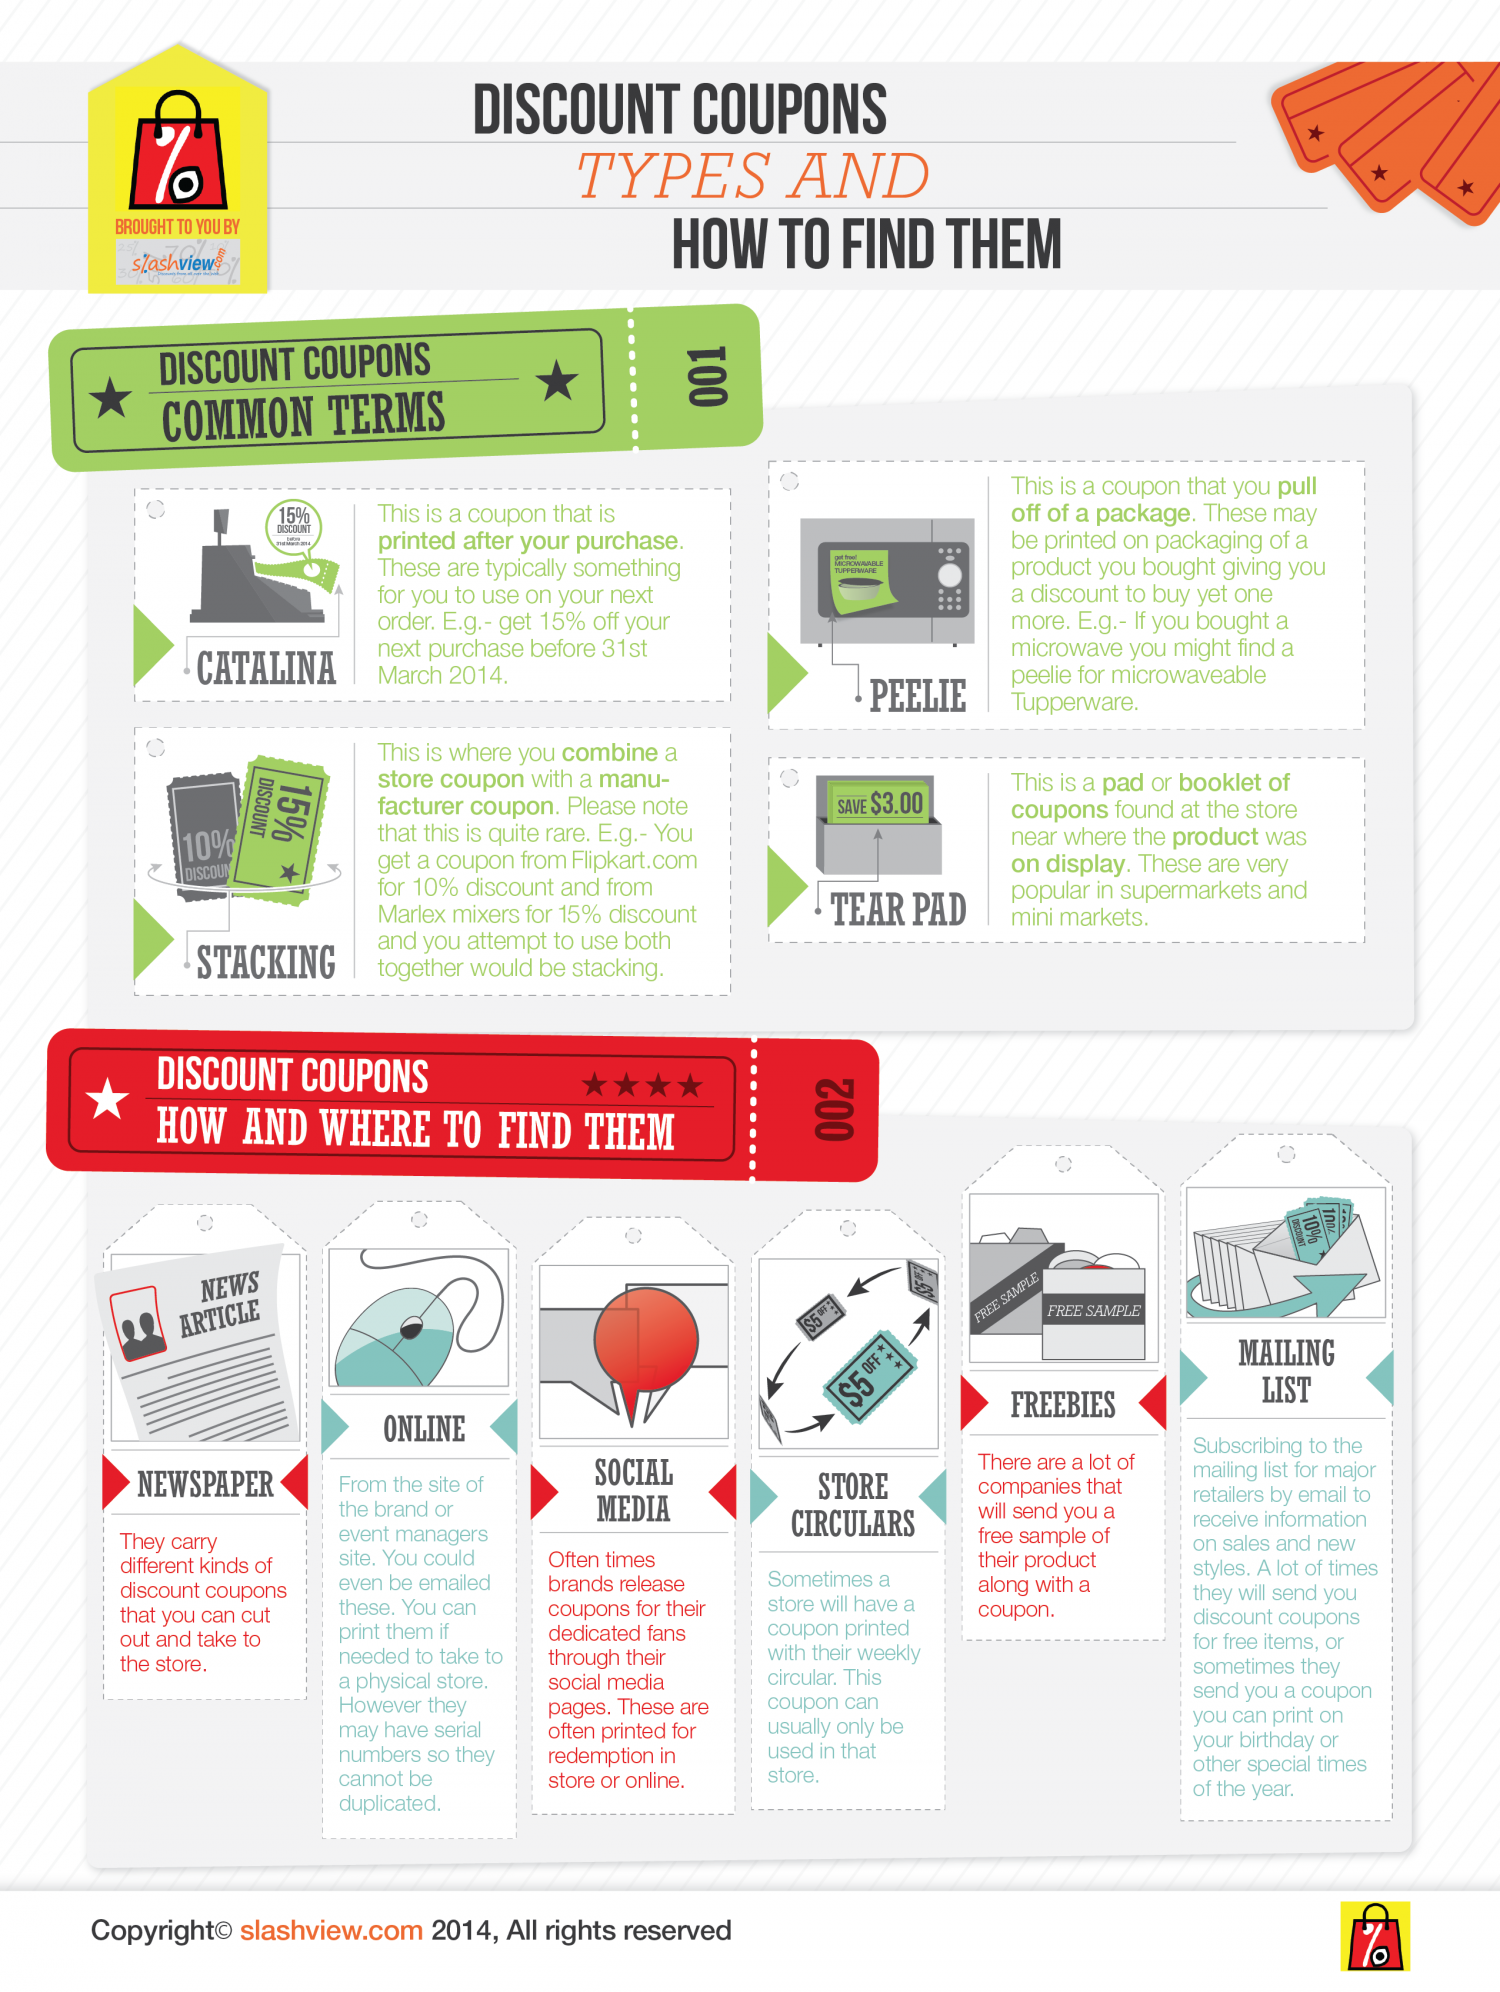 Discount Coupon Types and How to Find Them Infographic